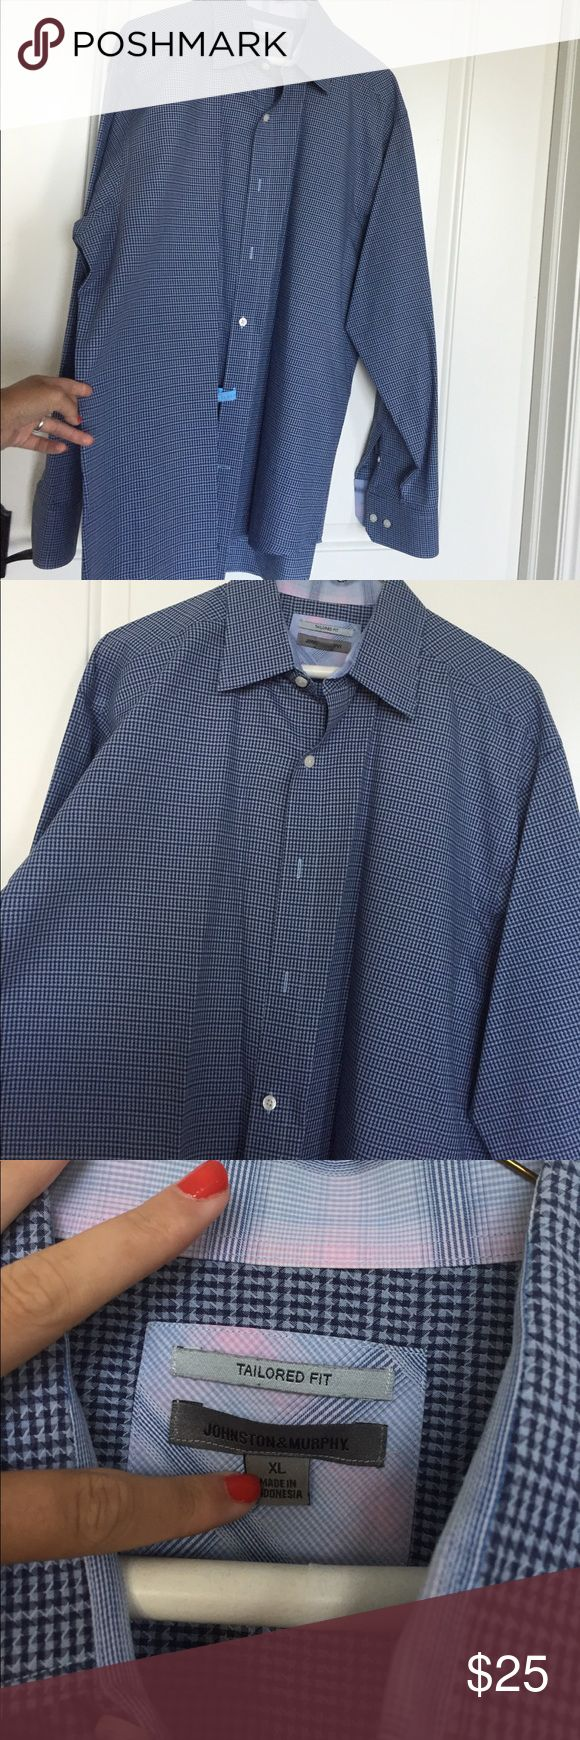 Johnston & Murphy Tailored Fit Tailored Fit Beautiful Blue and Never Worn! Johnston & Murphy Tops Button Down Shirts